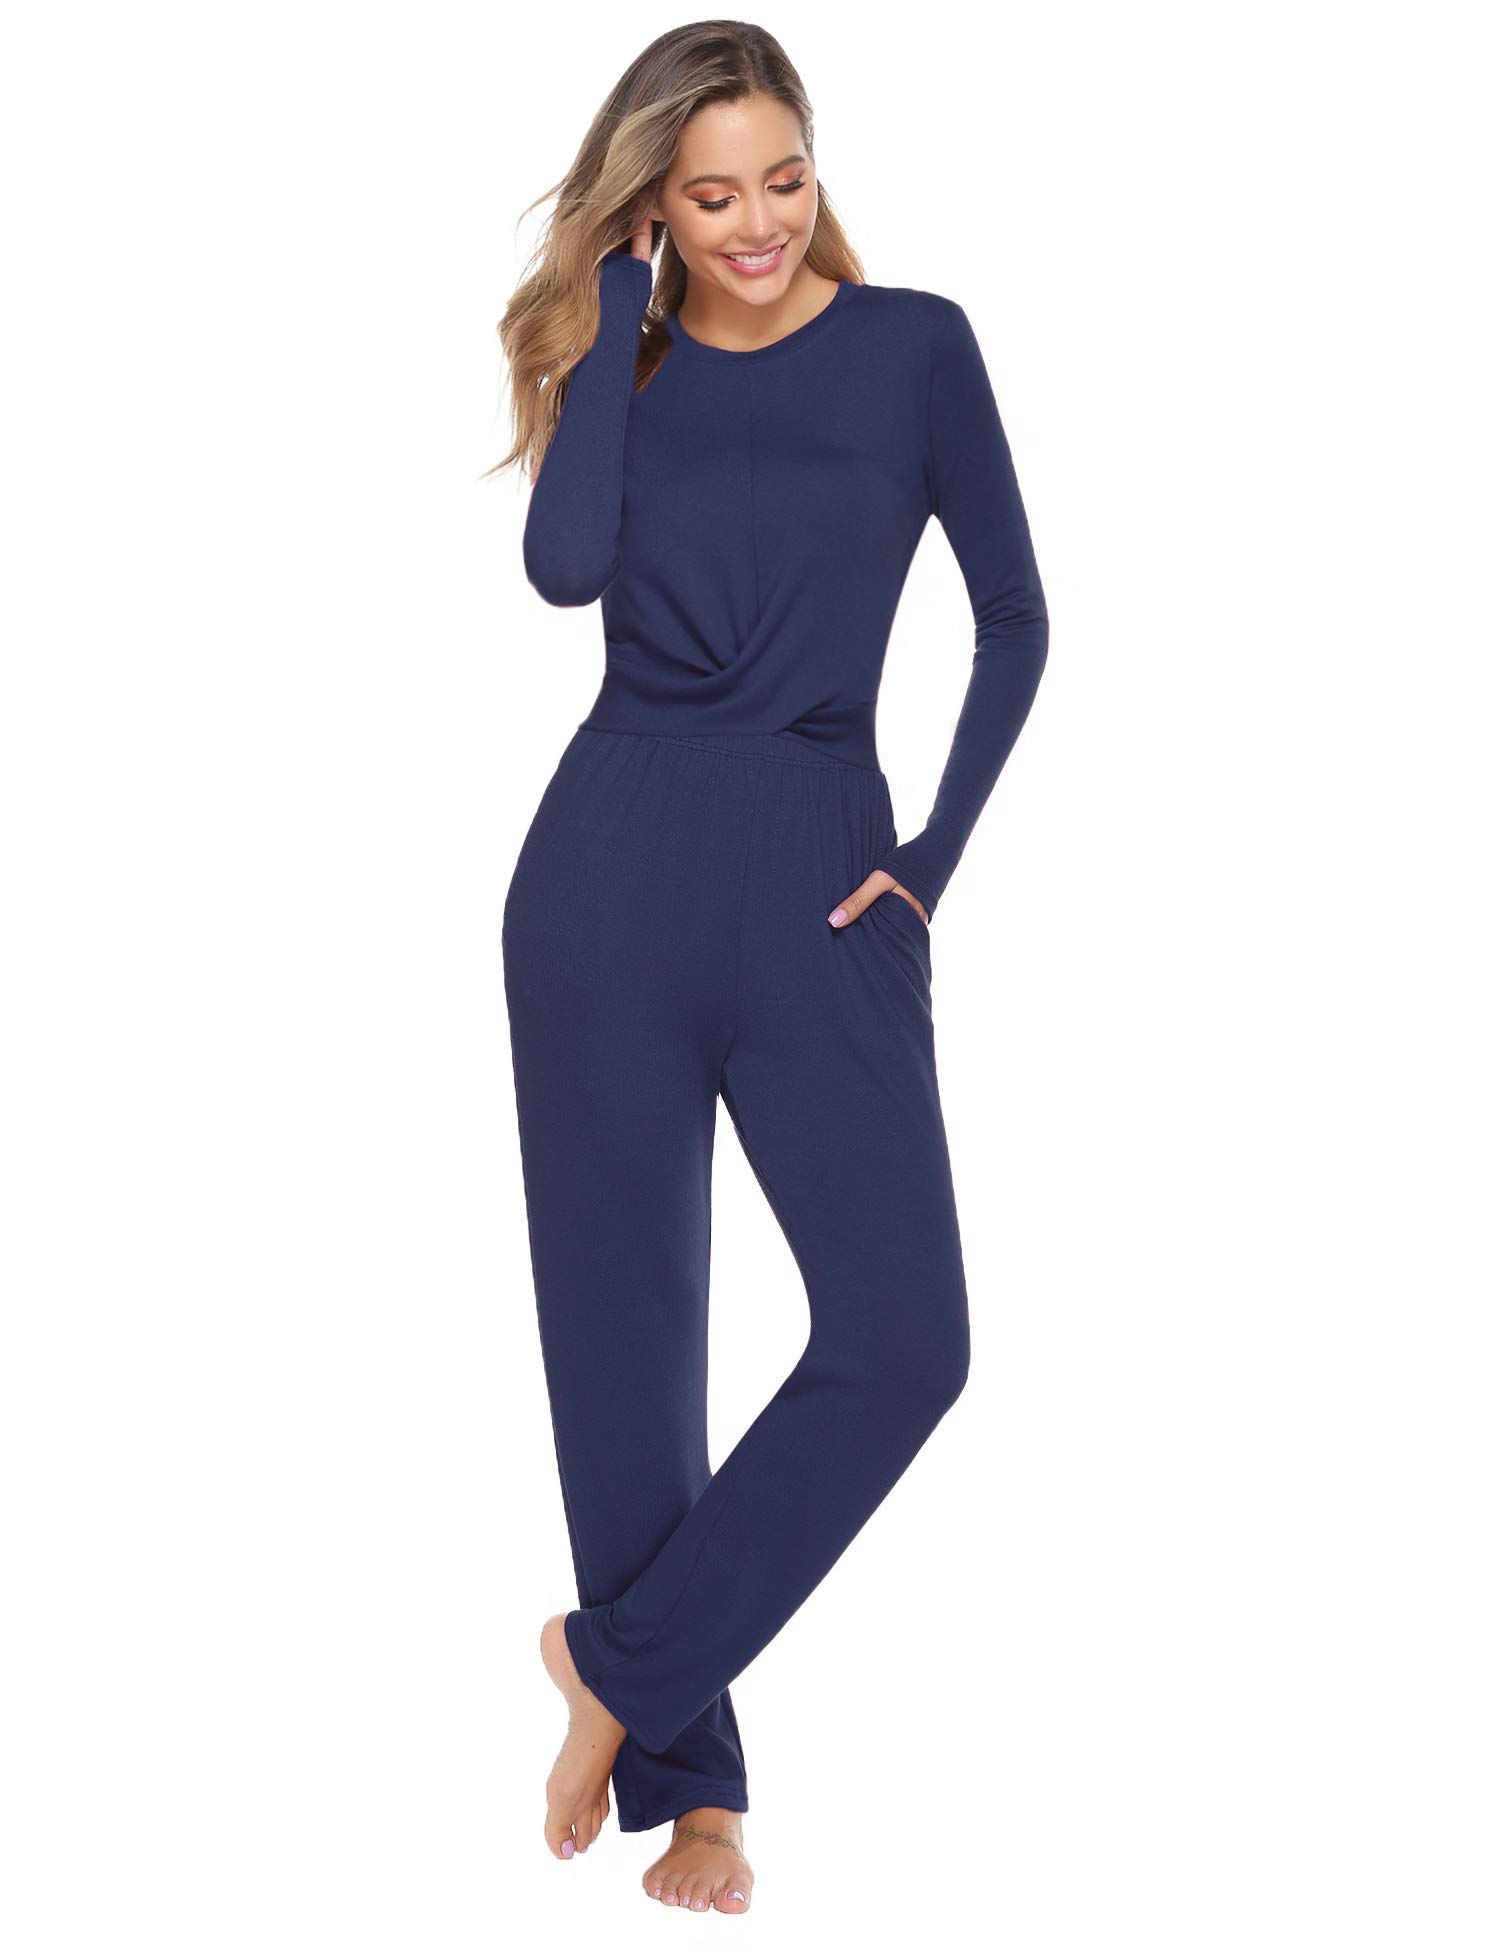 Abollria Women's Cotton Pajamas Set Long Sleeve Wrap Front Top and Pant Sleepwear Set